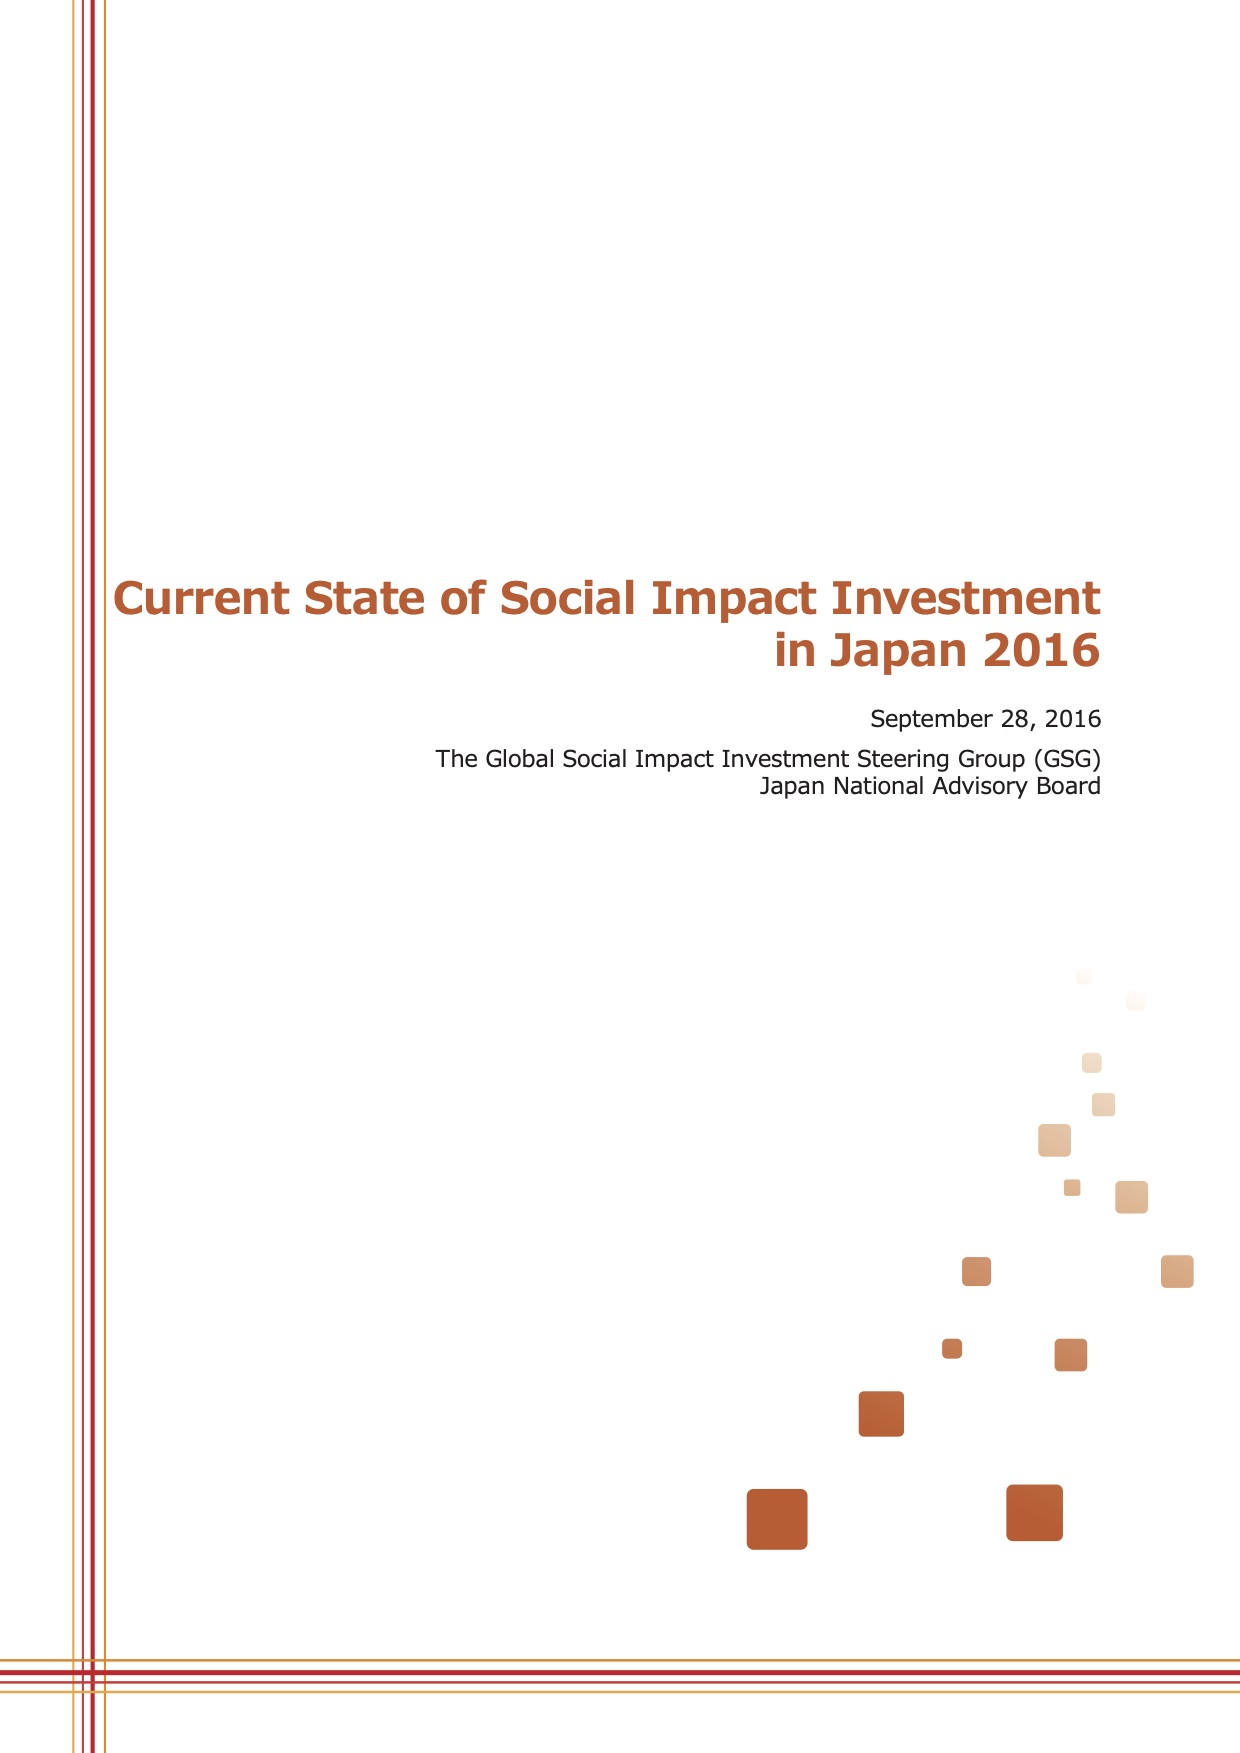 Current State of Social Impact Investment in Japan 2016